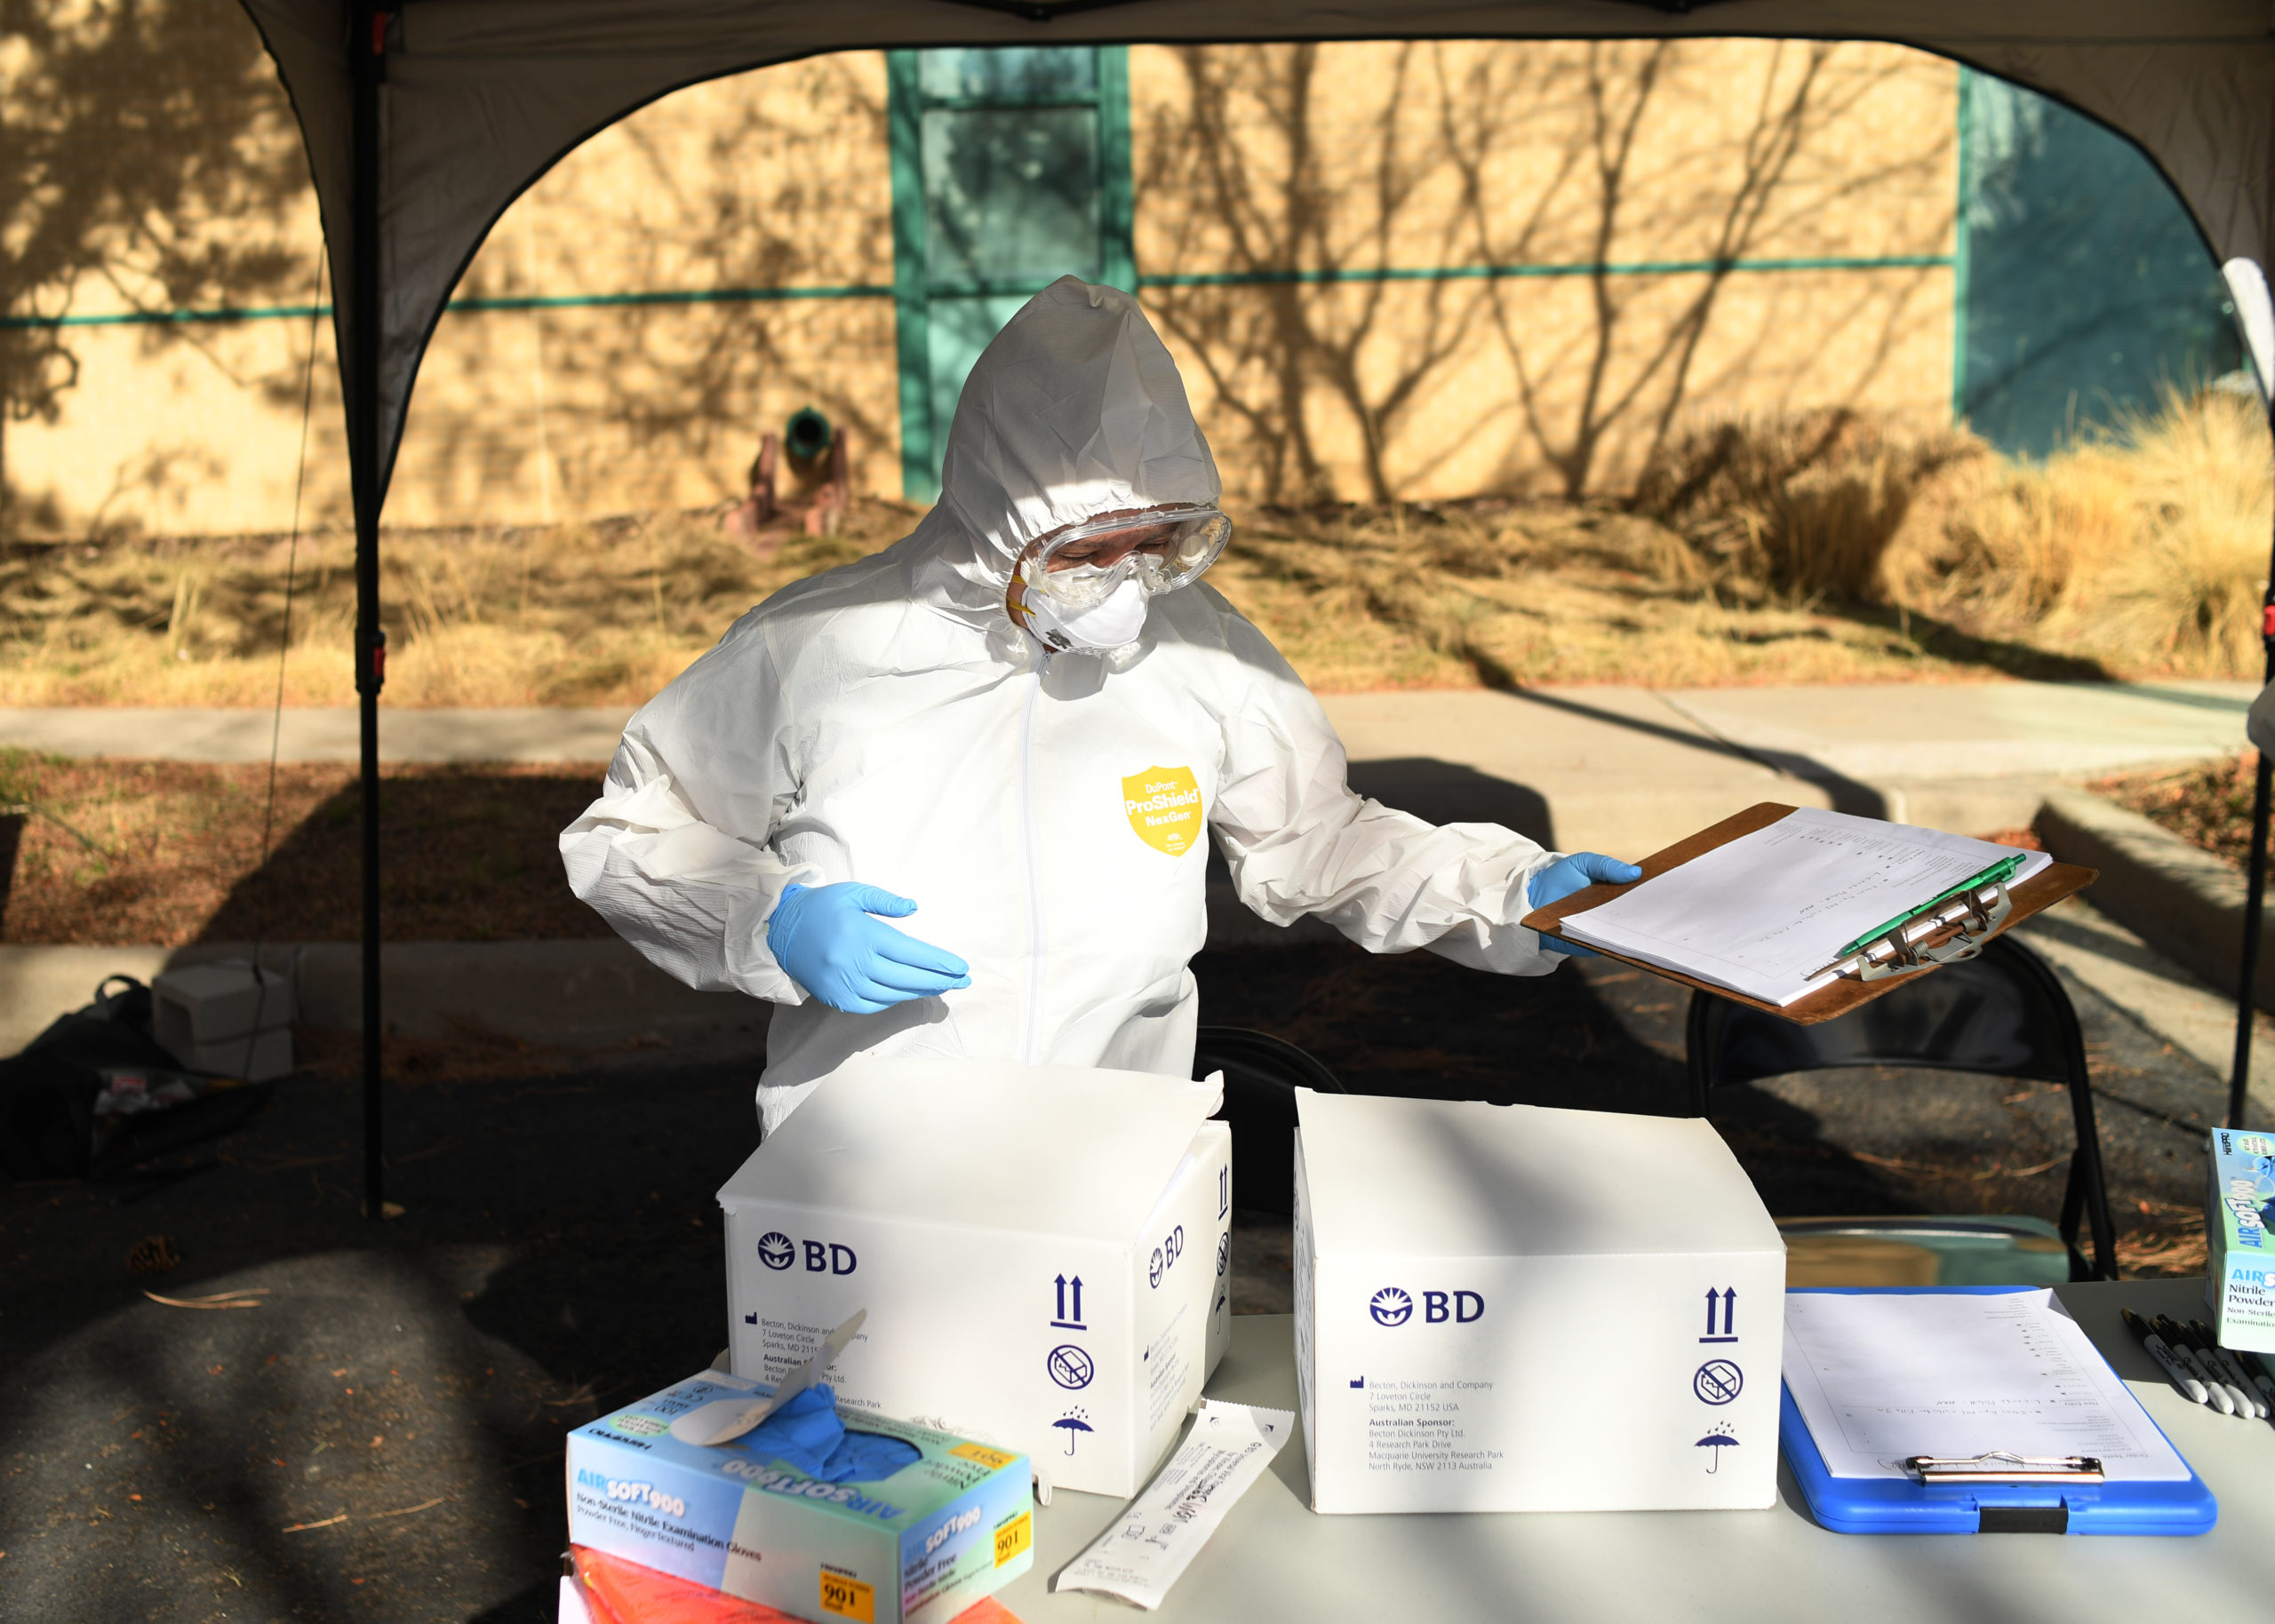 A woman sets up for the Colorado Department of Public Health and Environment first community testing center for COVID-19 at the state lab on March 11, 2020 in Denver, Colorado. The drive-up testing center at 8100 E. Lowry Blvd, was open from 10 a.m. - 2 p.m for patients with doctorÕs order.